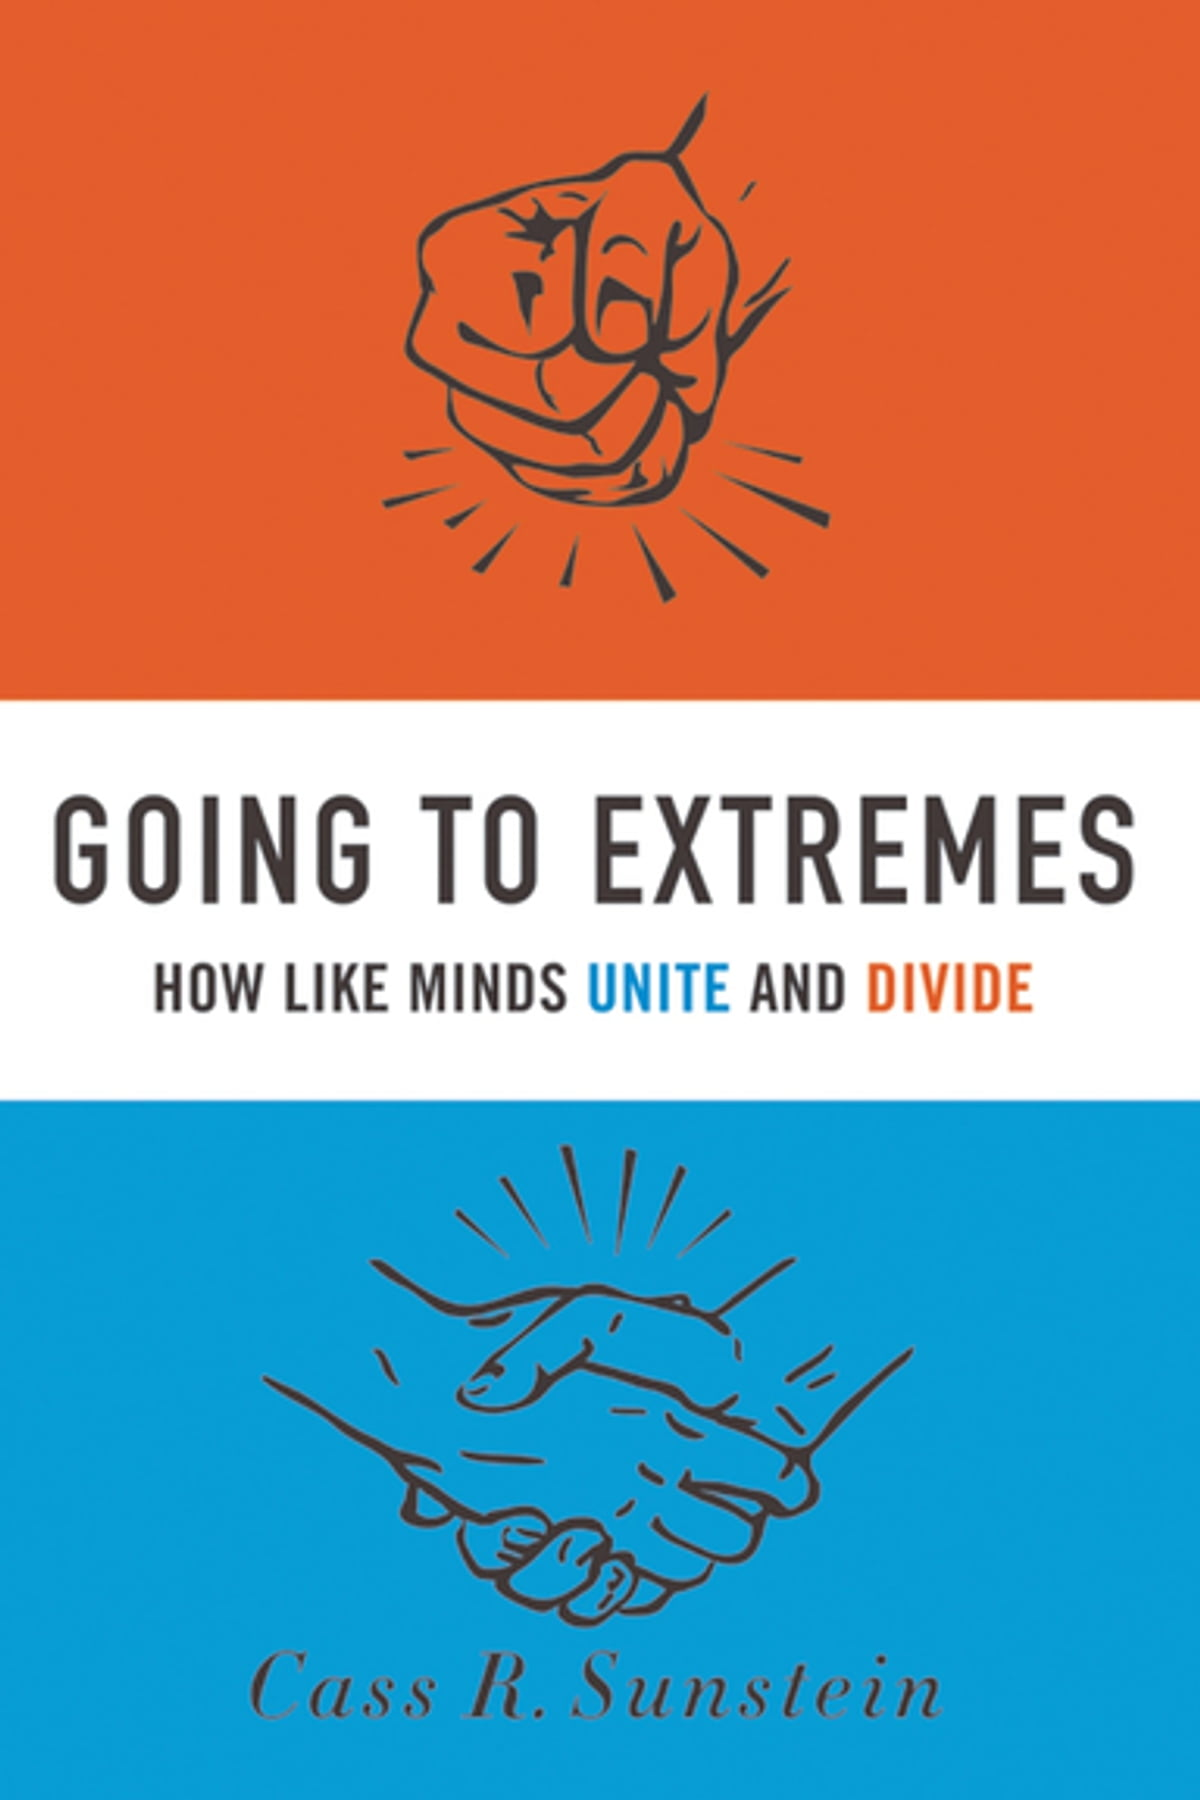 Going to Extremes eBook by Cass R. Sunstein - 9780199793143 | Rakuten Kobo